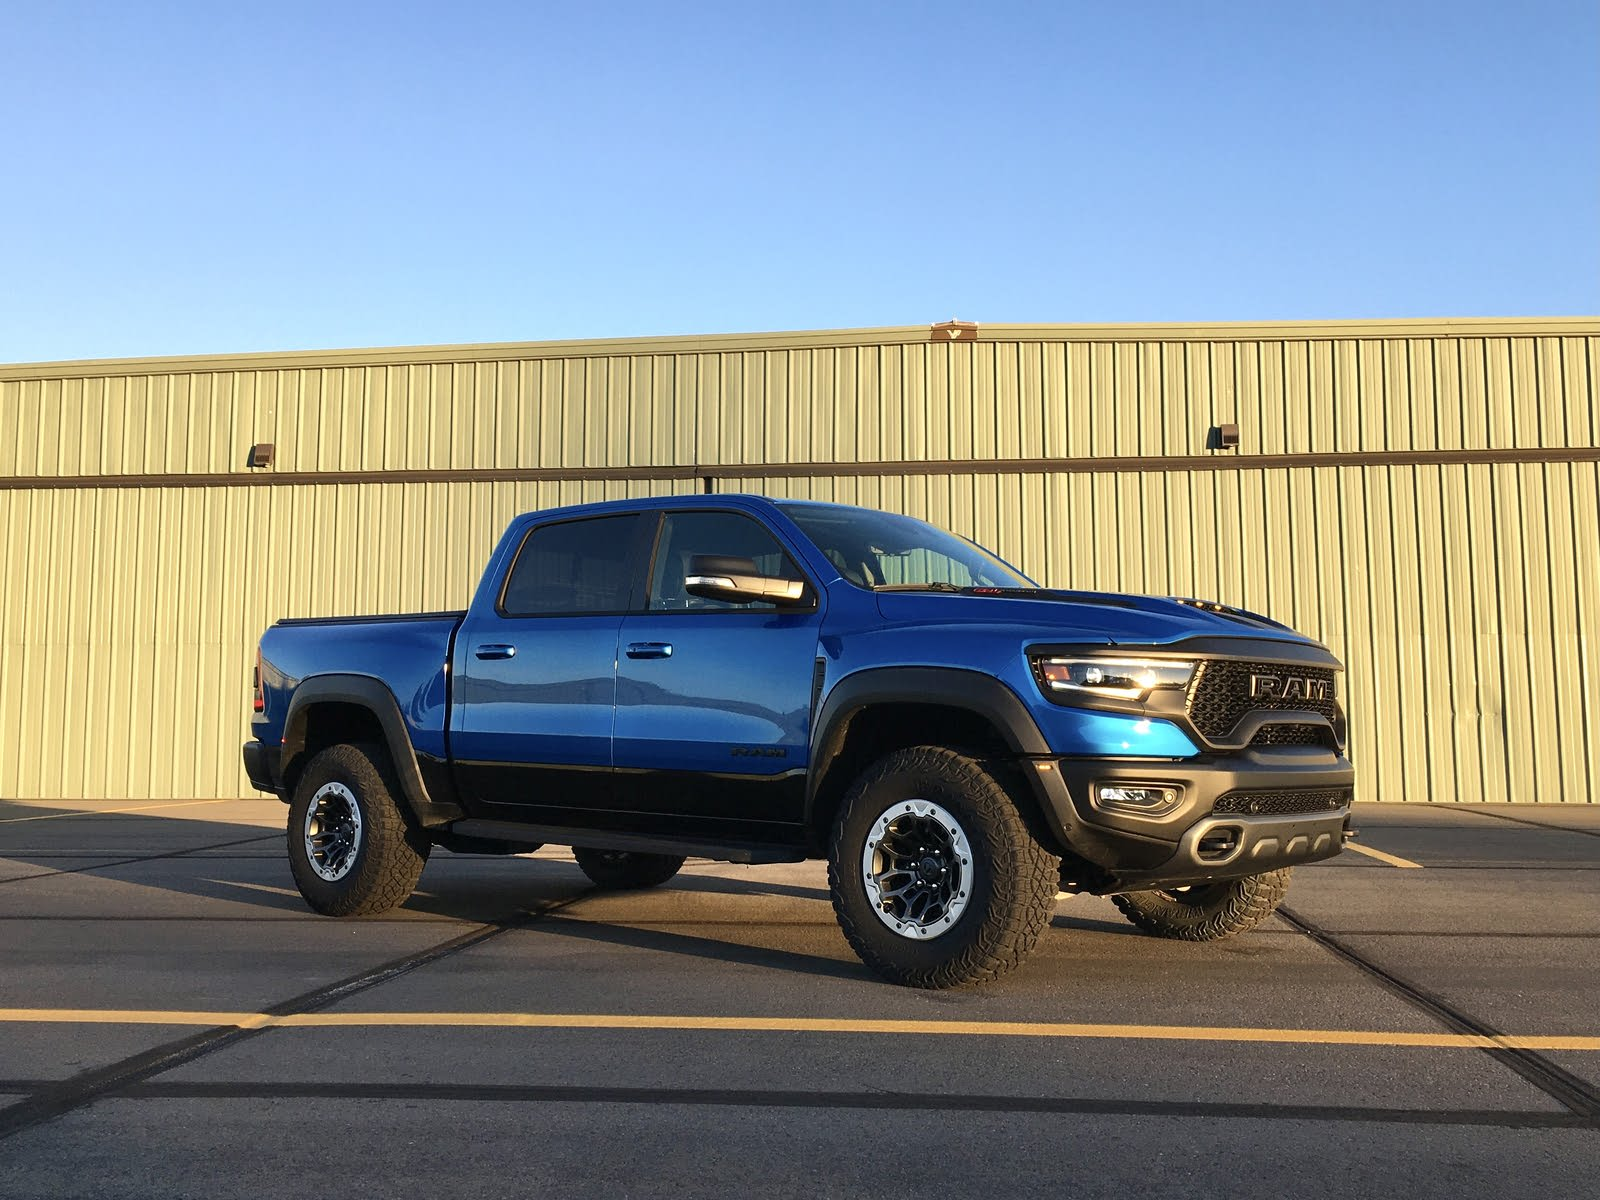 dodge ram ecodiesel for sale near me Used RAM 2 for Sale (with Photos) - CarGurus